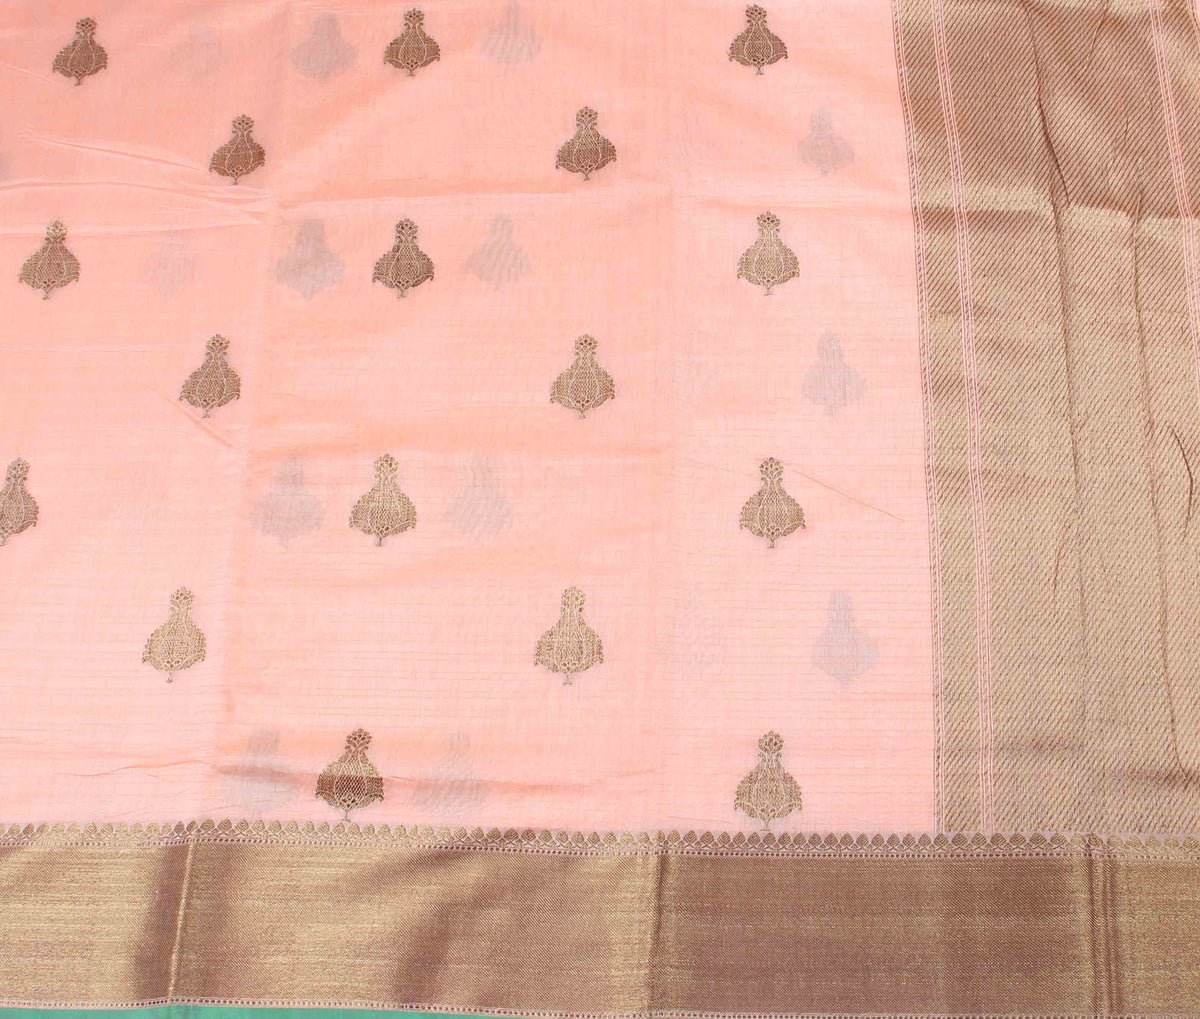 Peach Silk Cotton Handwoven Banarasi saree with kadwa boota (2) Flat